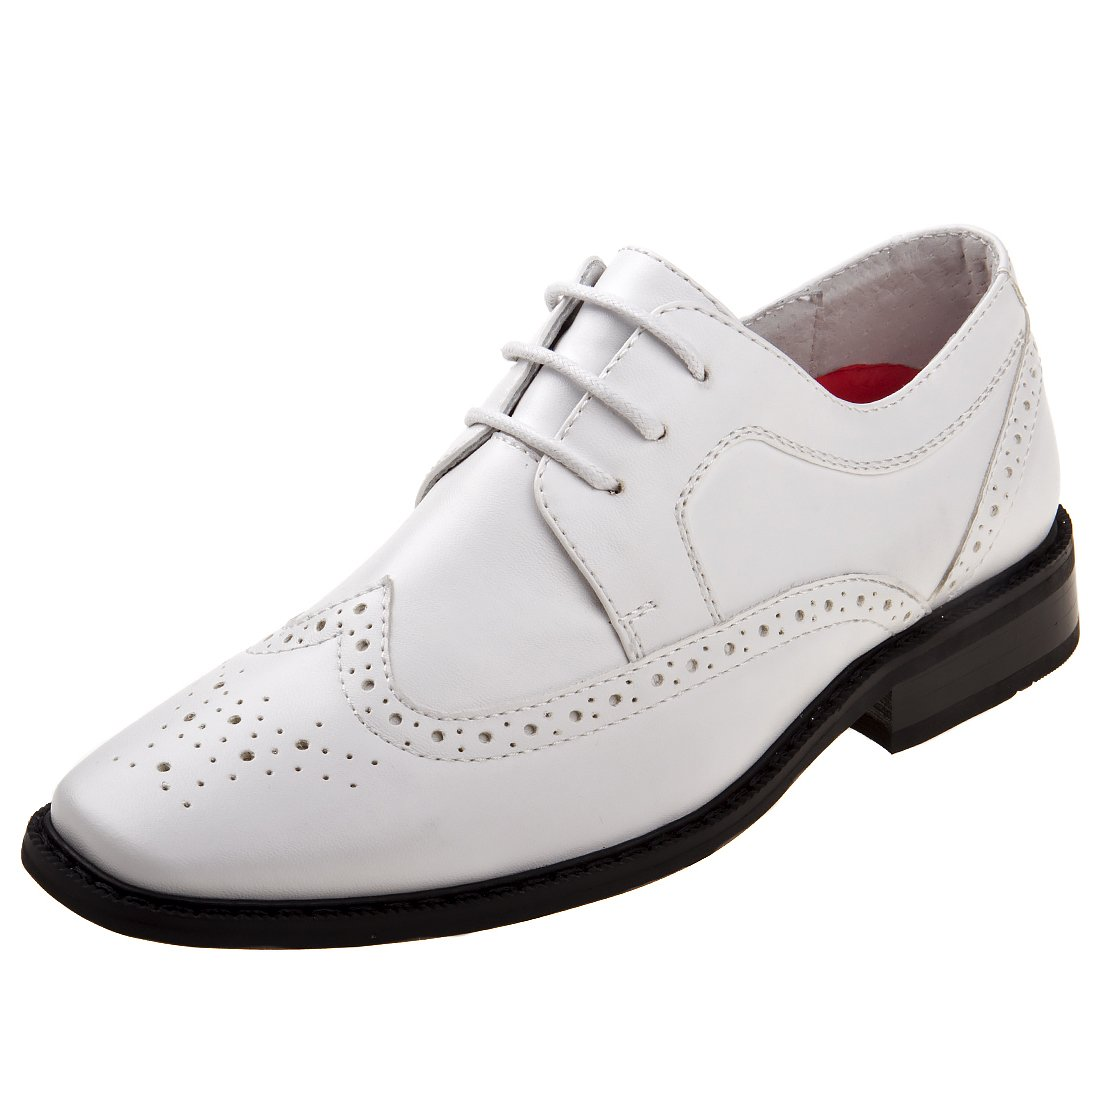 Joseph Allen Boy's Wing Tip Oxford Dress Shoe, White, 13 M US Little Kid'